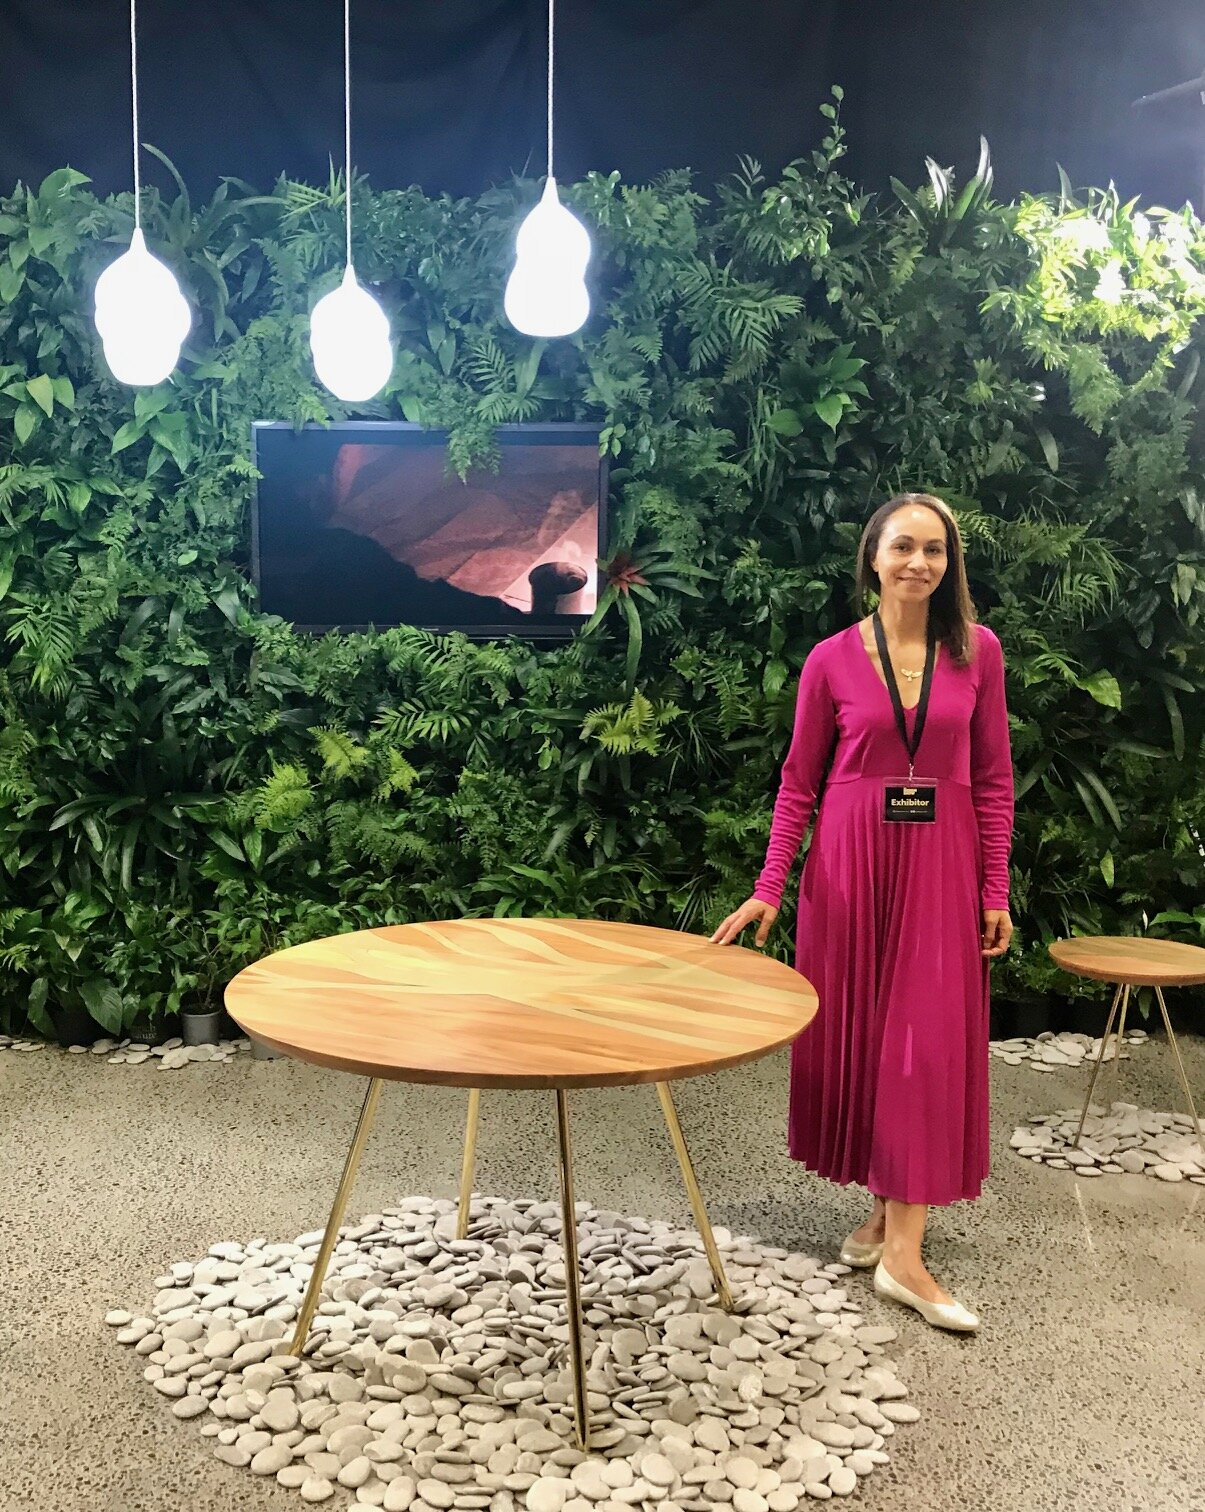 Creative director and founder, Lyzadie Renault, by the FLOW Round Dining Table.